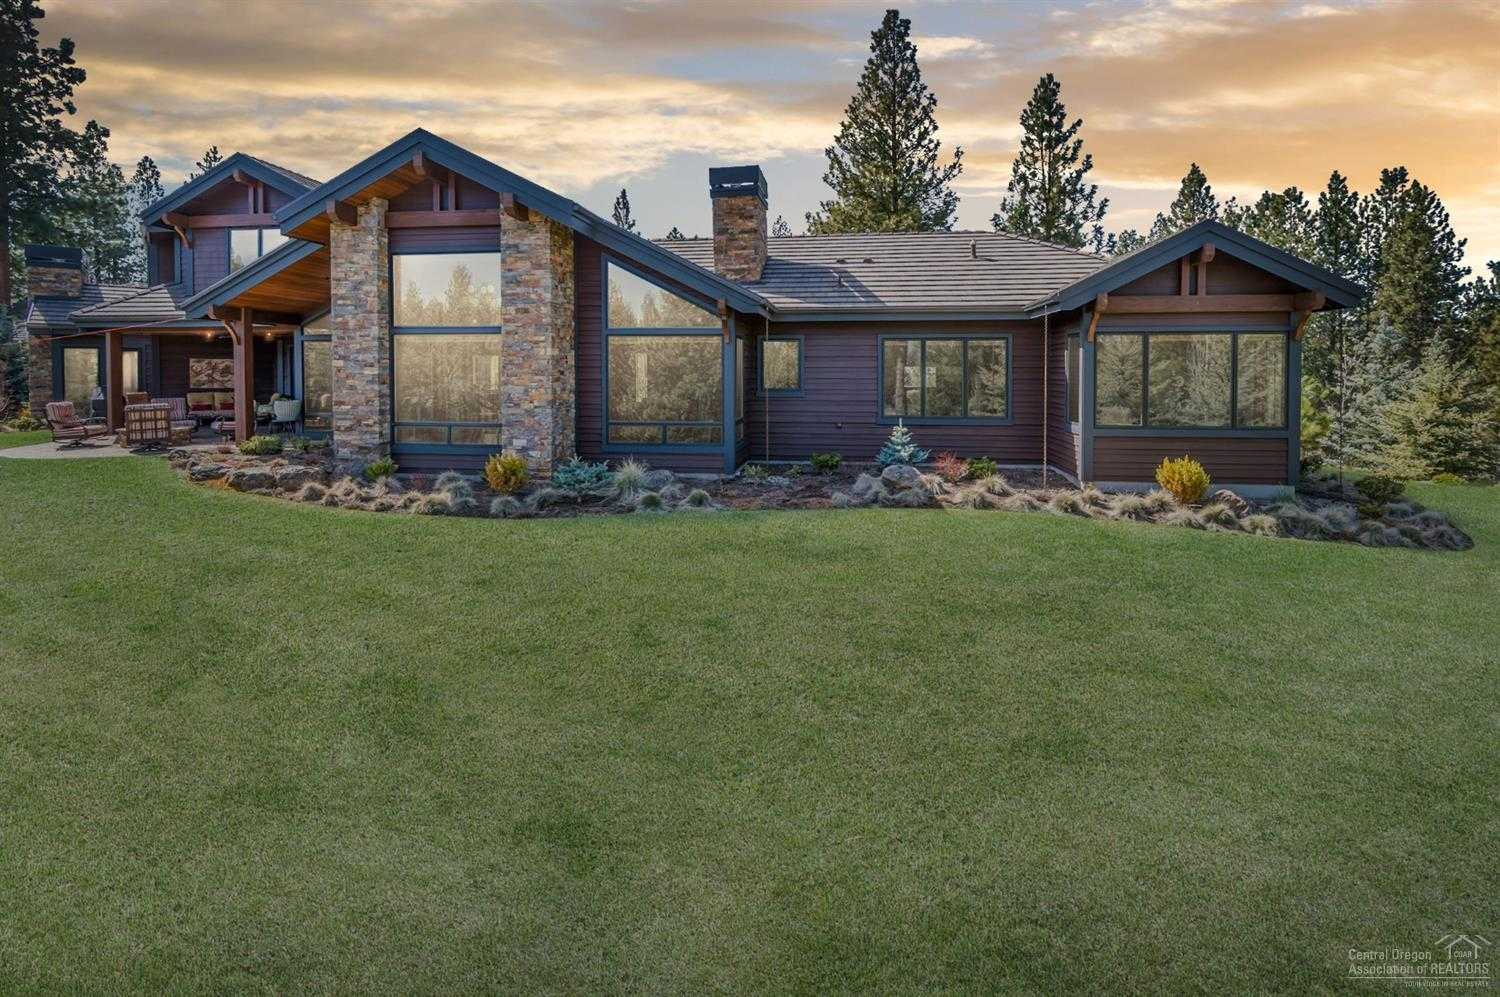 $2,650,000 - 5Br/6Ba -  for Sale in Bend